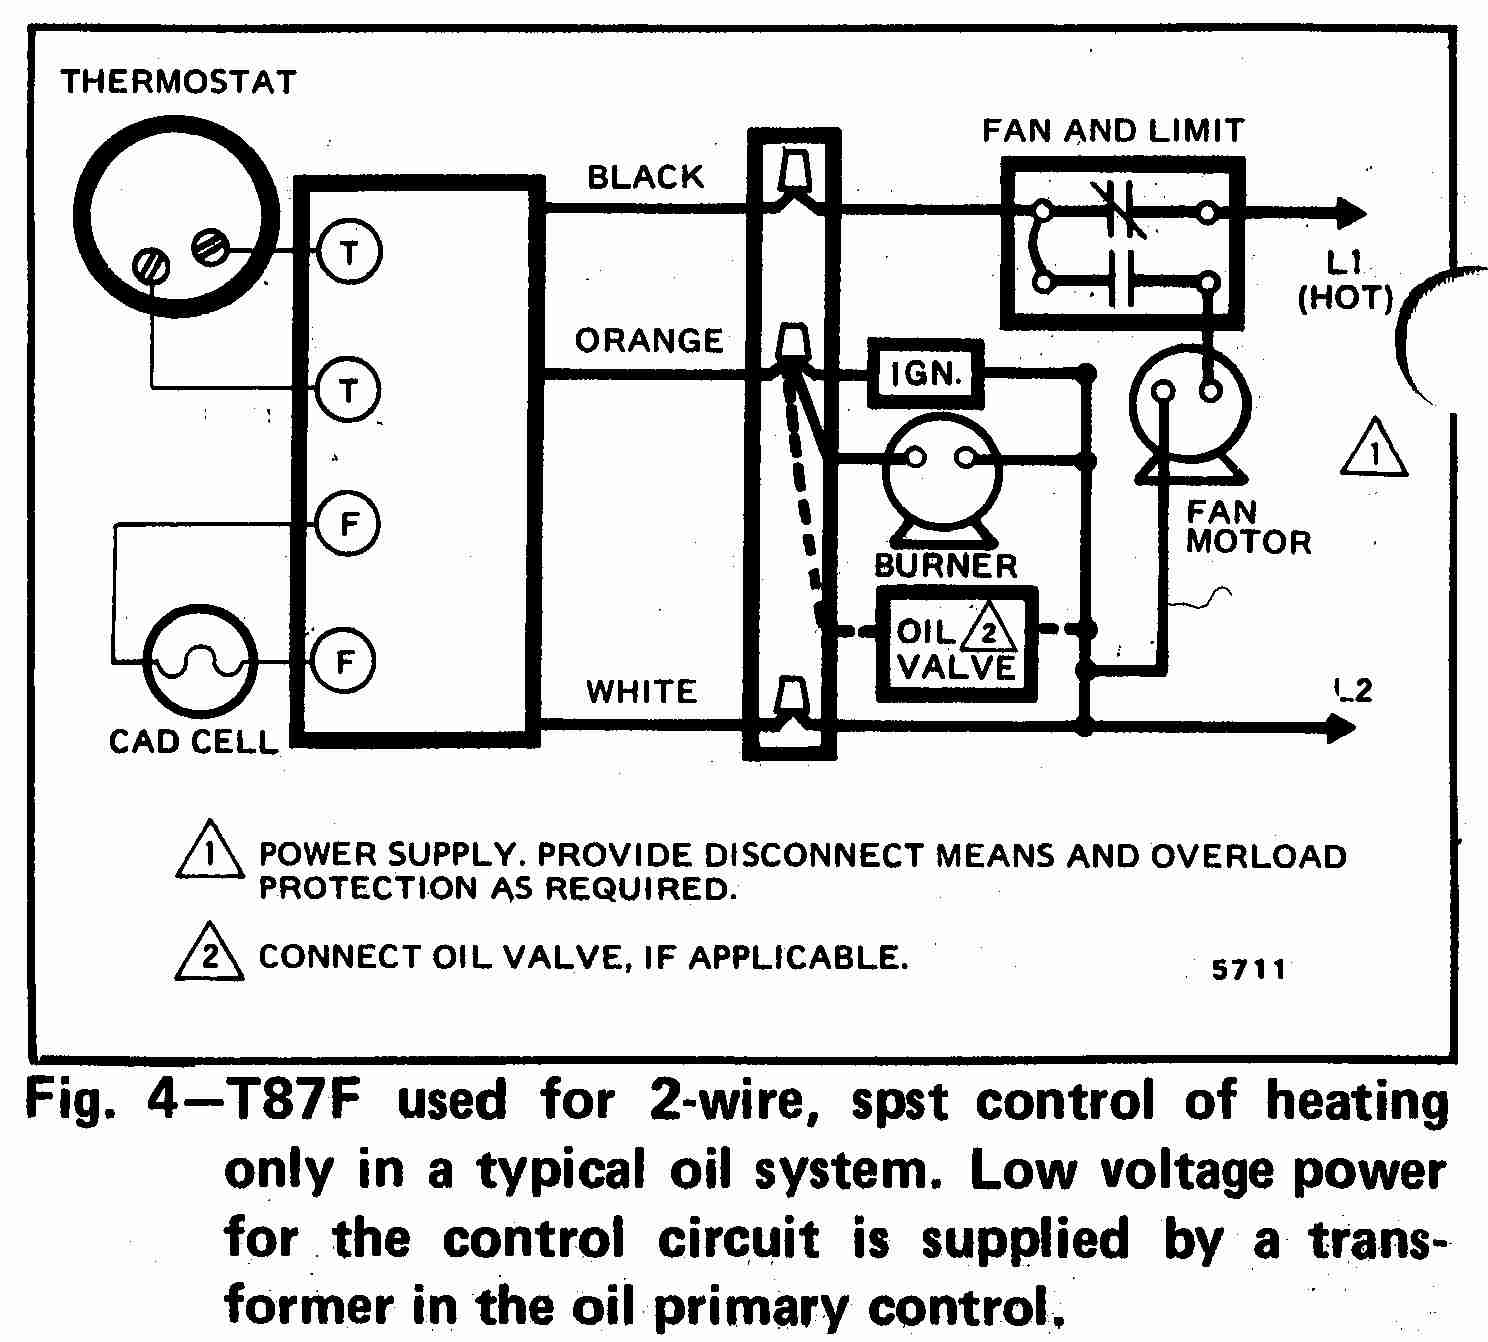 TT_T87F_0002_2W_DJF wiring diagram for a wiring diagram for ima \u2022 wiring diagrams j dual immersion heater wiring diagram at suagrazia.org